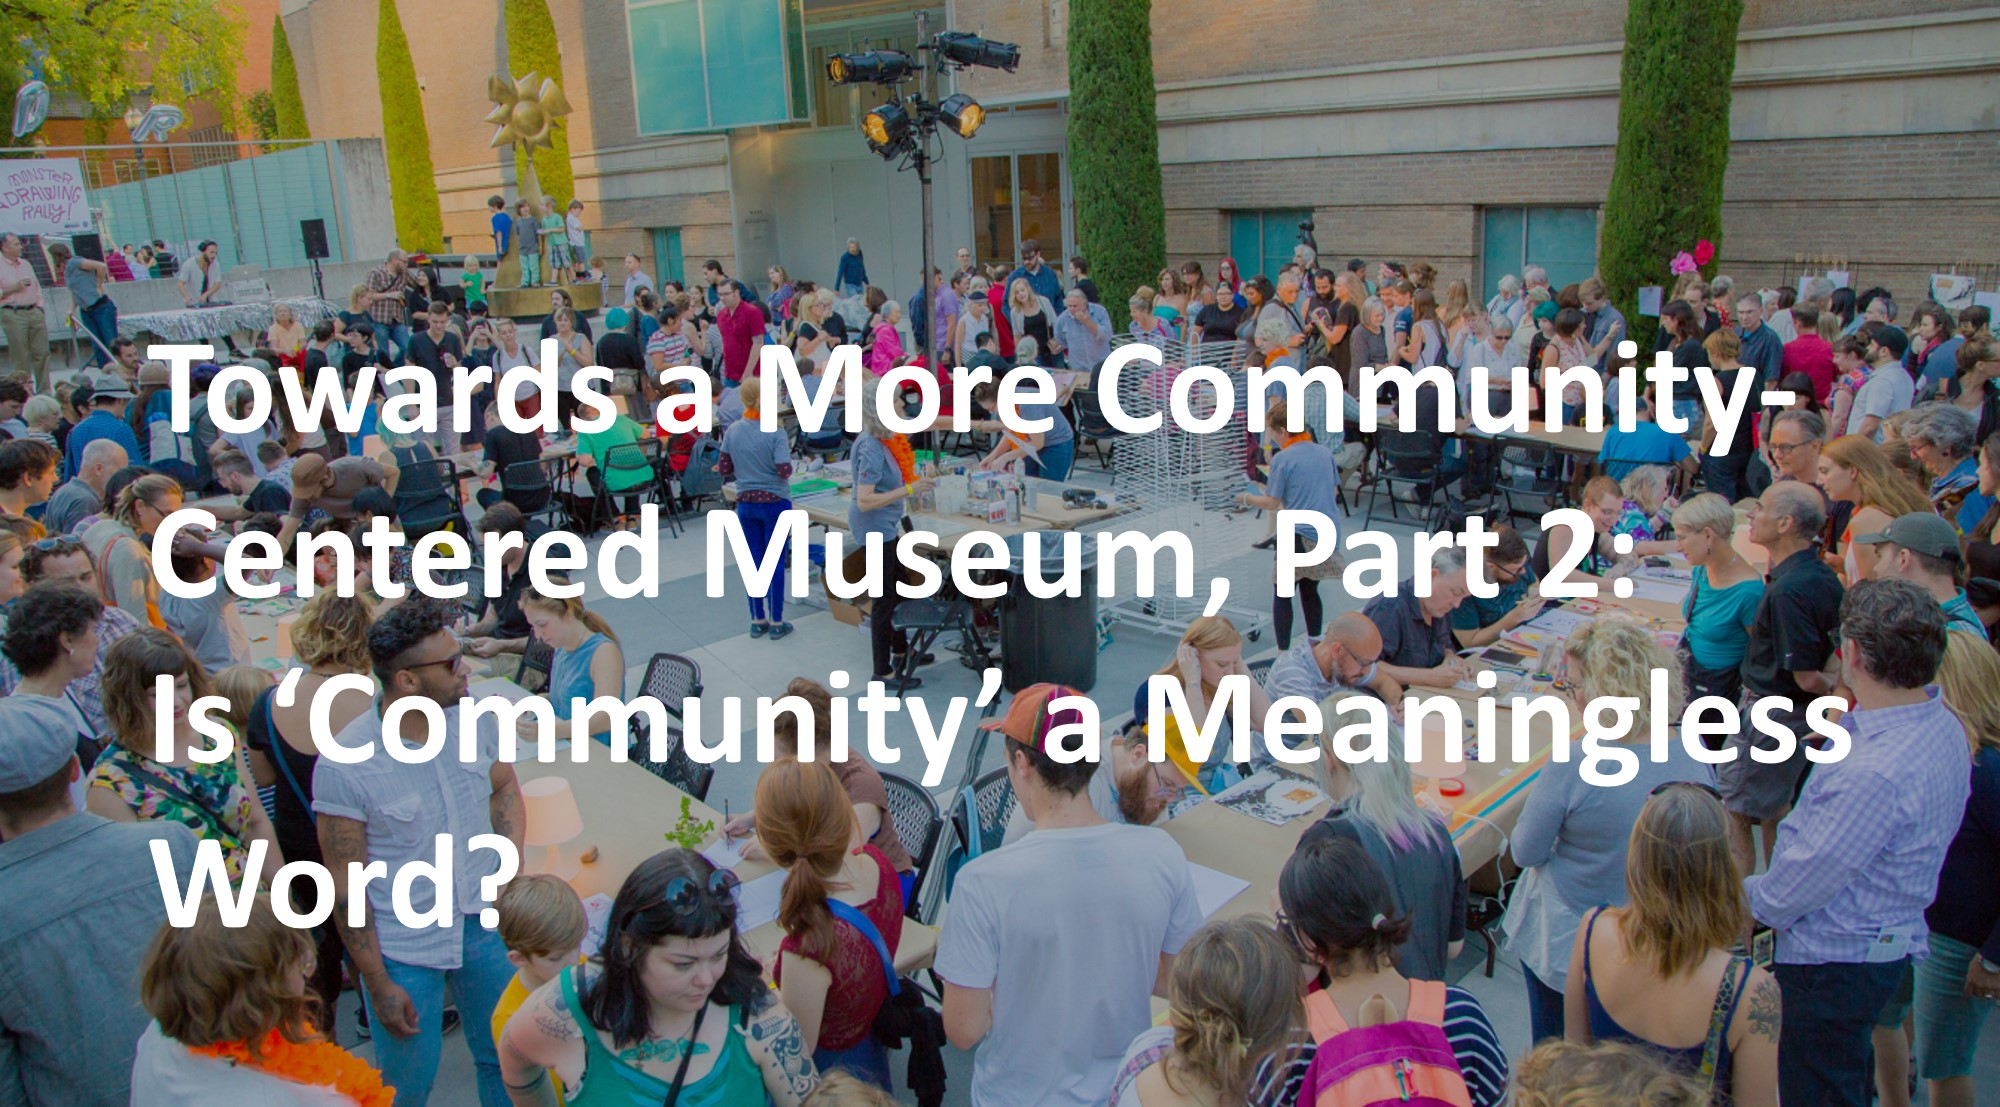 Is 'Community' a Meaningless Word?